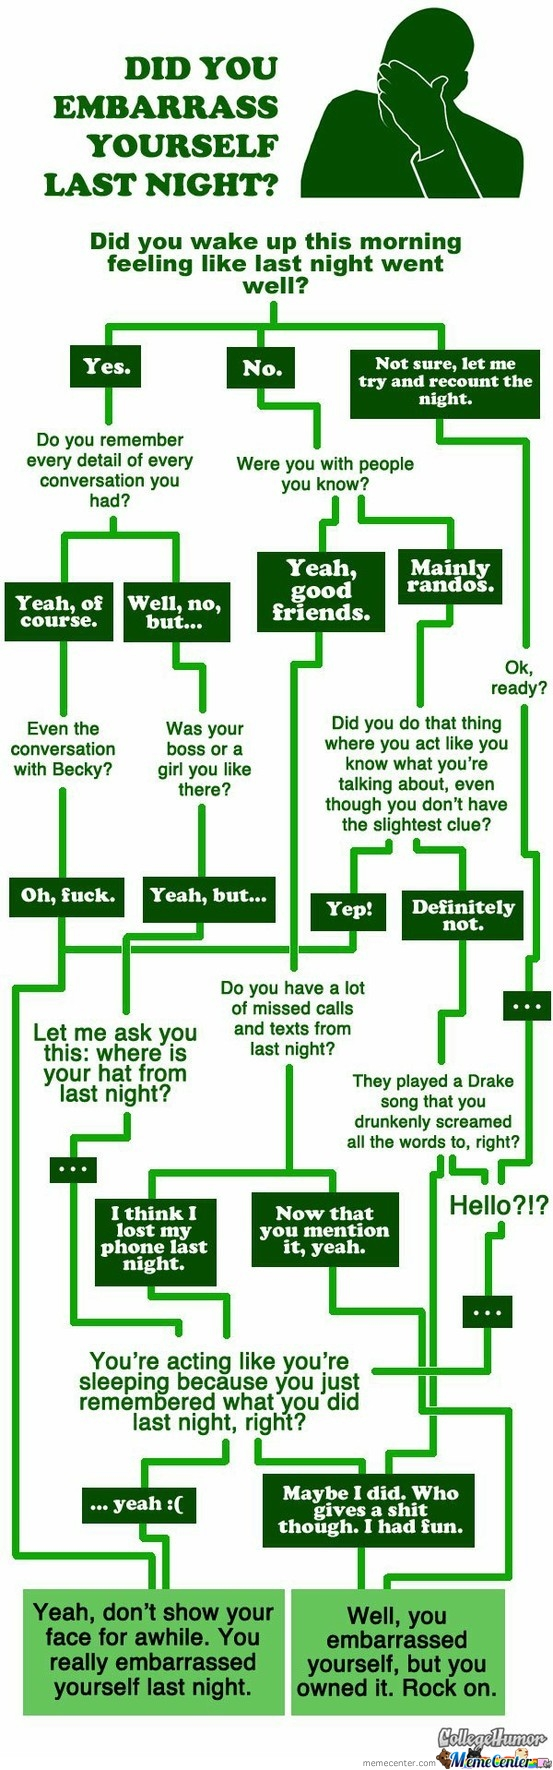 Flowchart memes best collection of funny flowchart pictures flowchart did you embarrass yourself last night nvjuhfo Choice Image